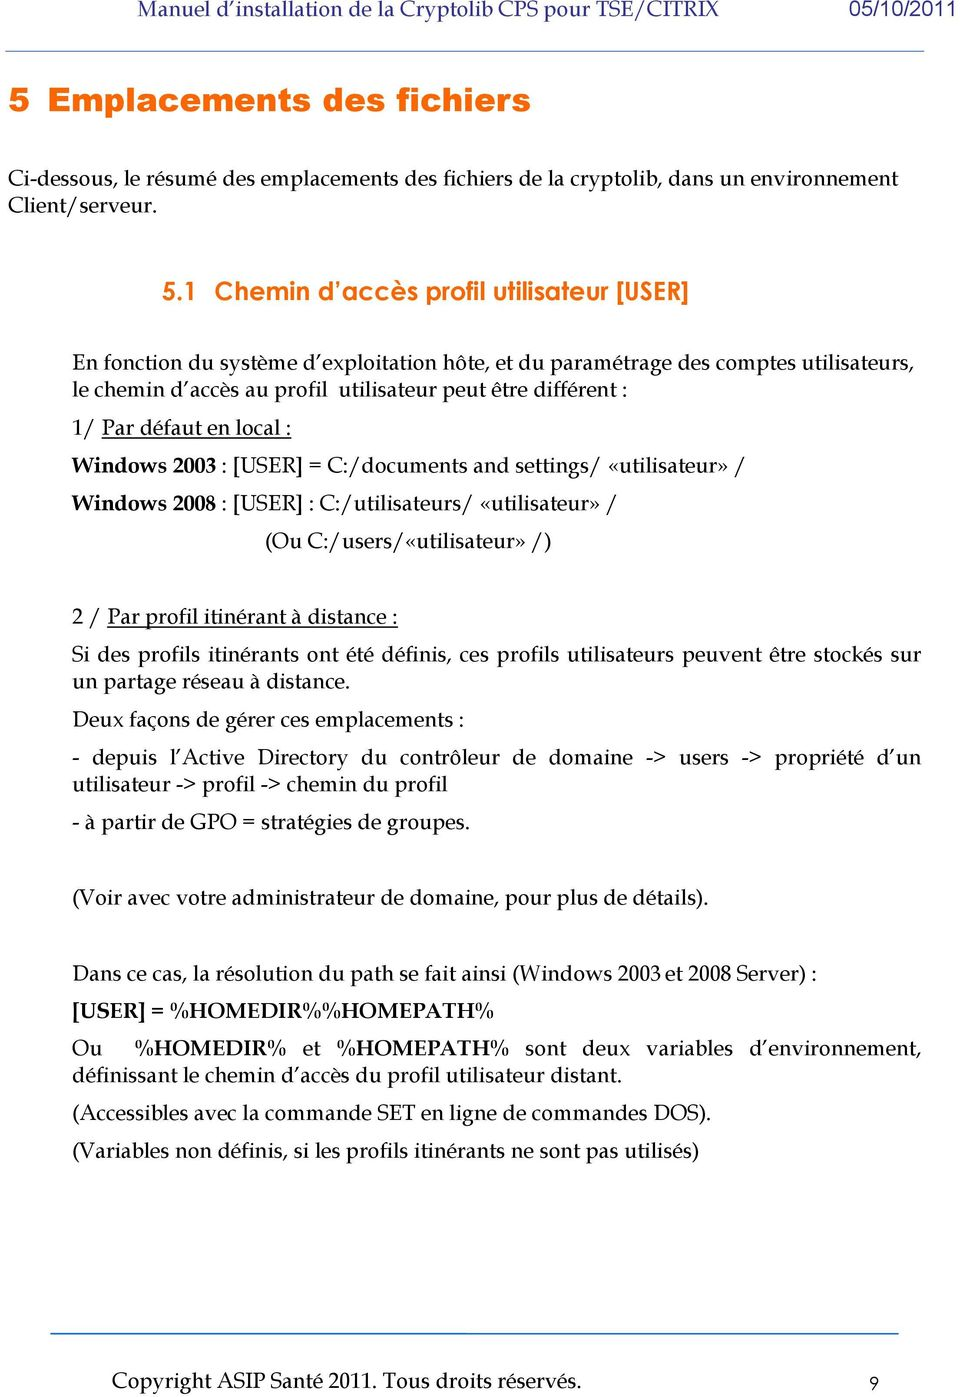 défaut en local : Windows 2003 : [USER] = C:/documents and settings/ «utilisateur» / Windows 2008 : [USER] : C:/utilisateurs/ «utilisateur» / (Ou C:/users/«utilisateur» /) 2 / Par profil itinérant à